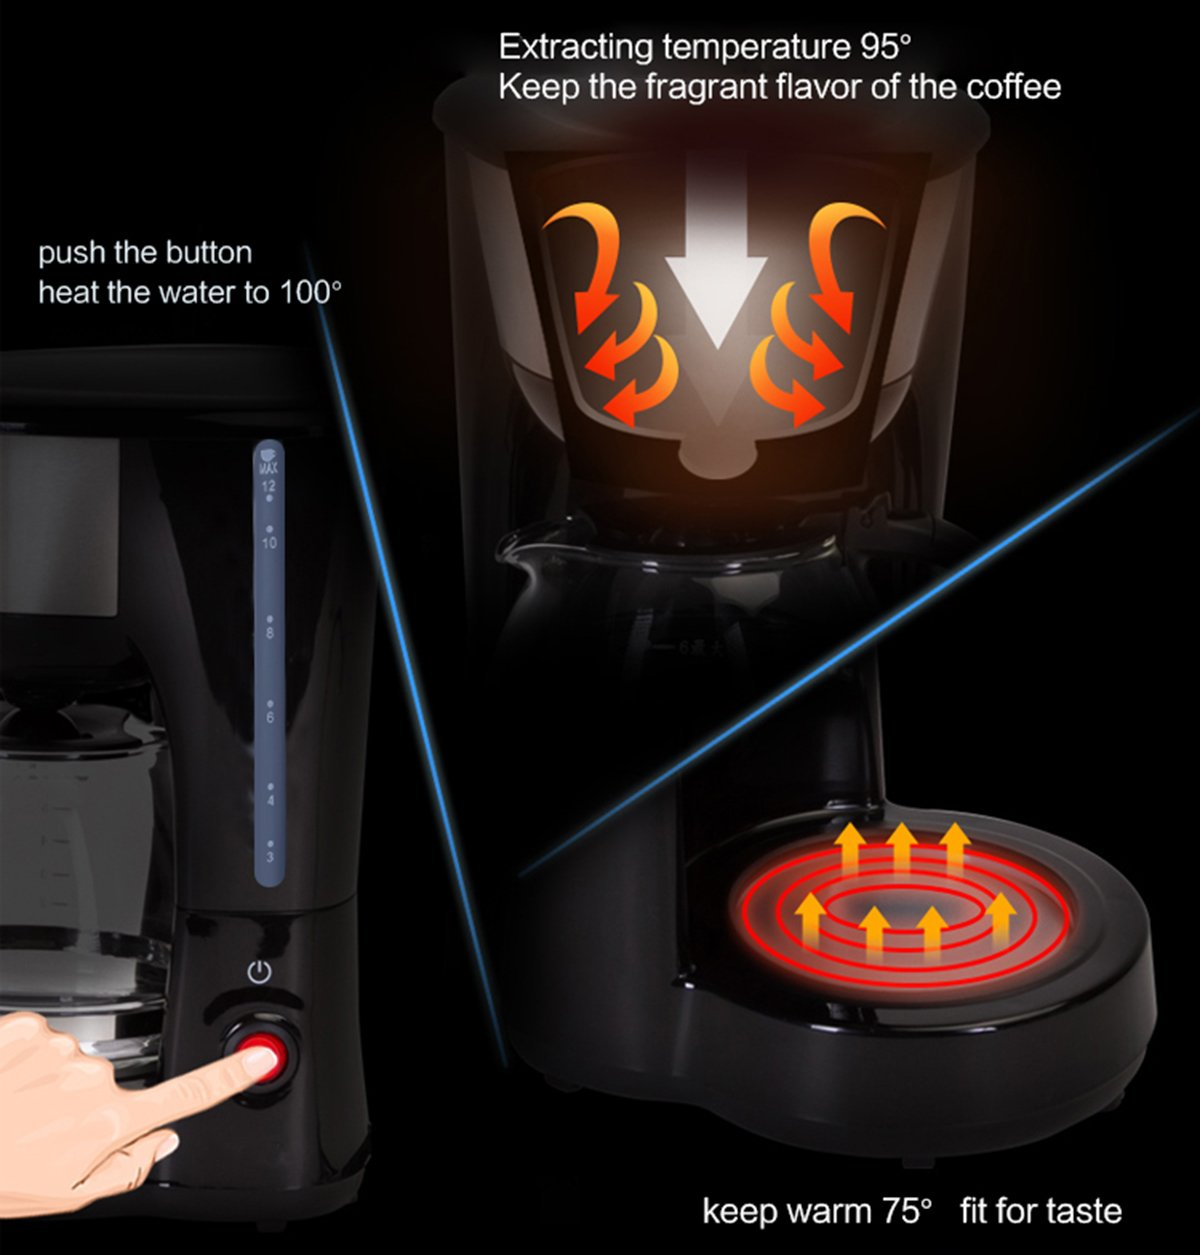 Coffee Make 12-Cup Drip Coffeemakerr,ZuoAn With Glass Coffee Pot and Reusable Mesh Filter, Stainless Steel Coffee Machine,Black Large Capacity, CM-601 Black+Red (Black+Red) by ZUOAN (Image #3)